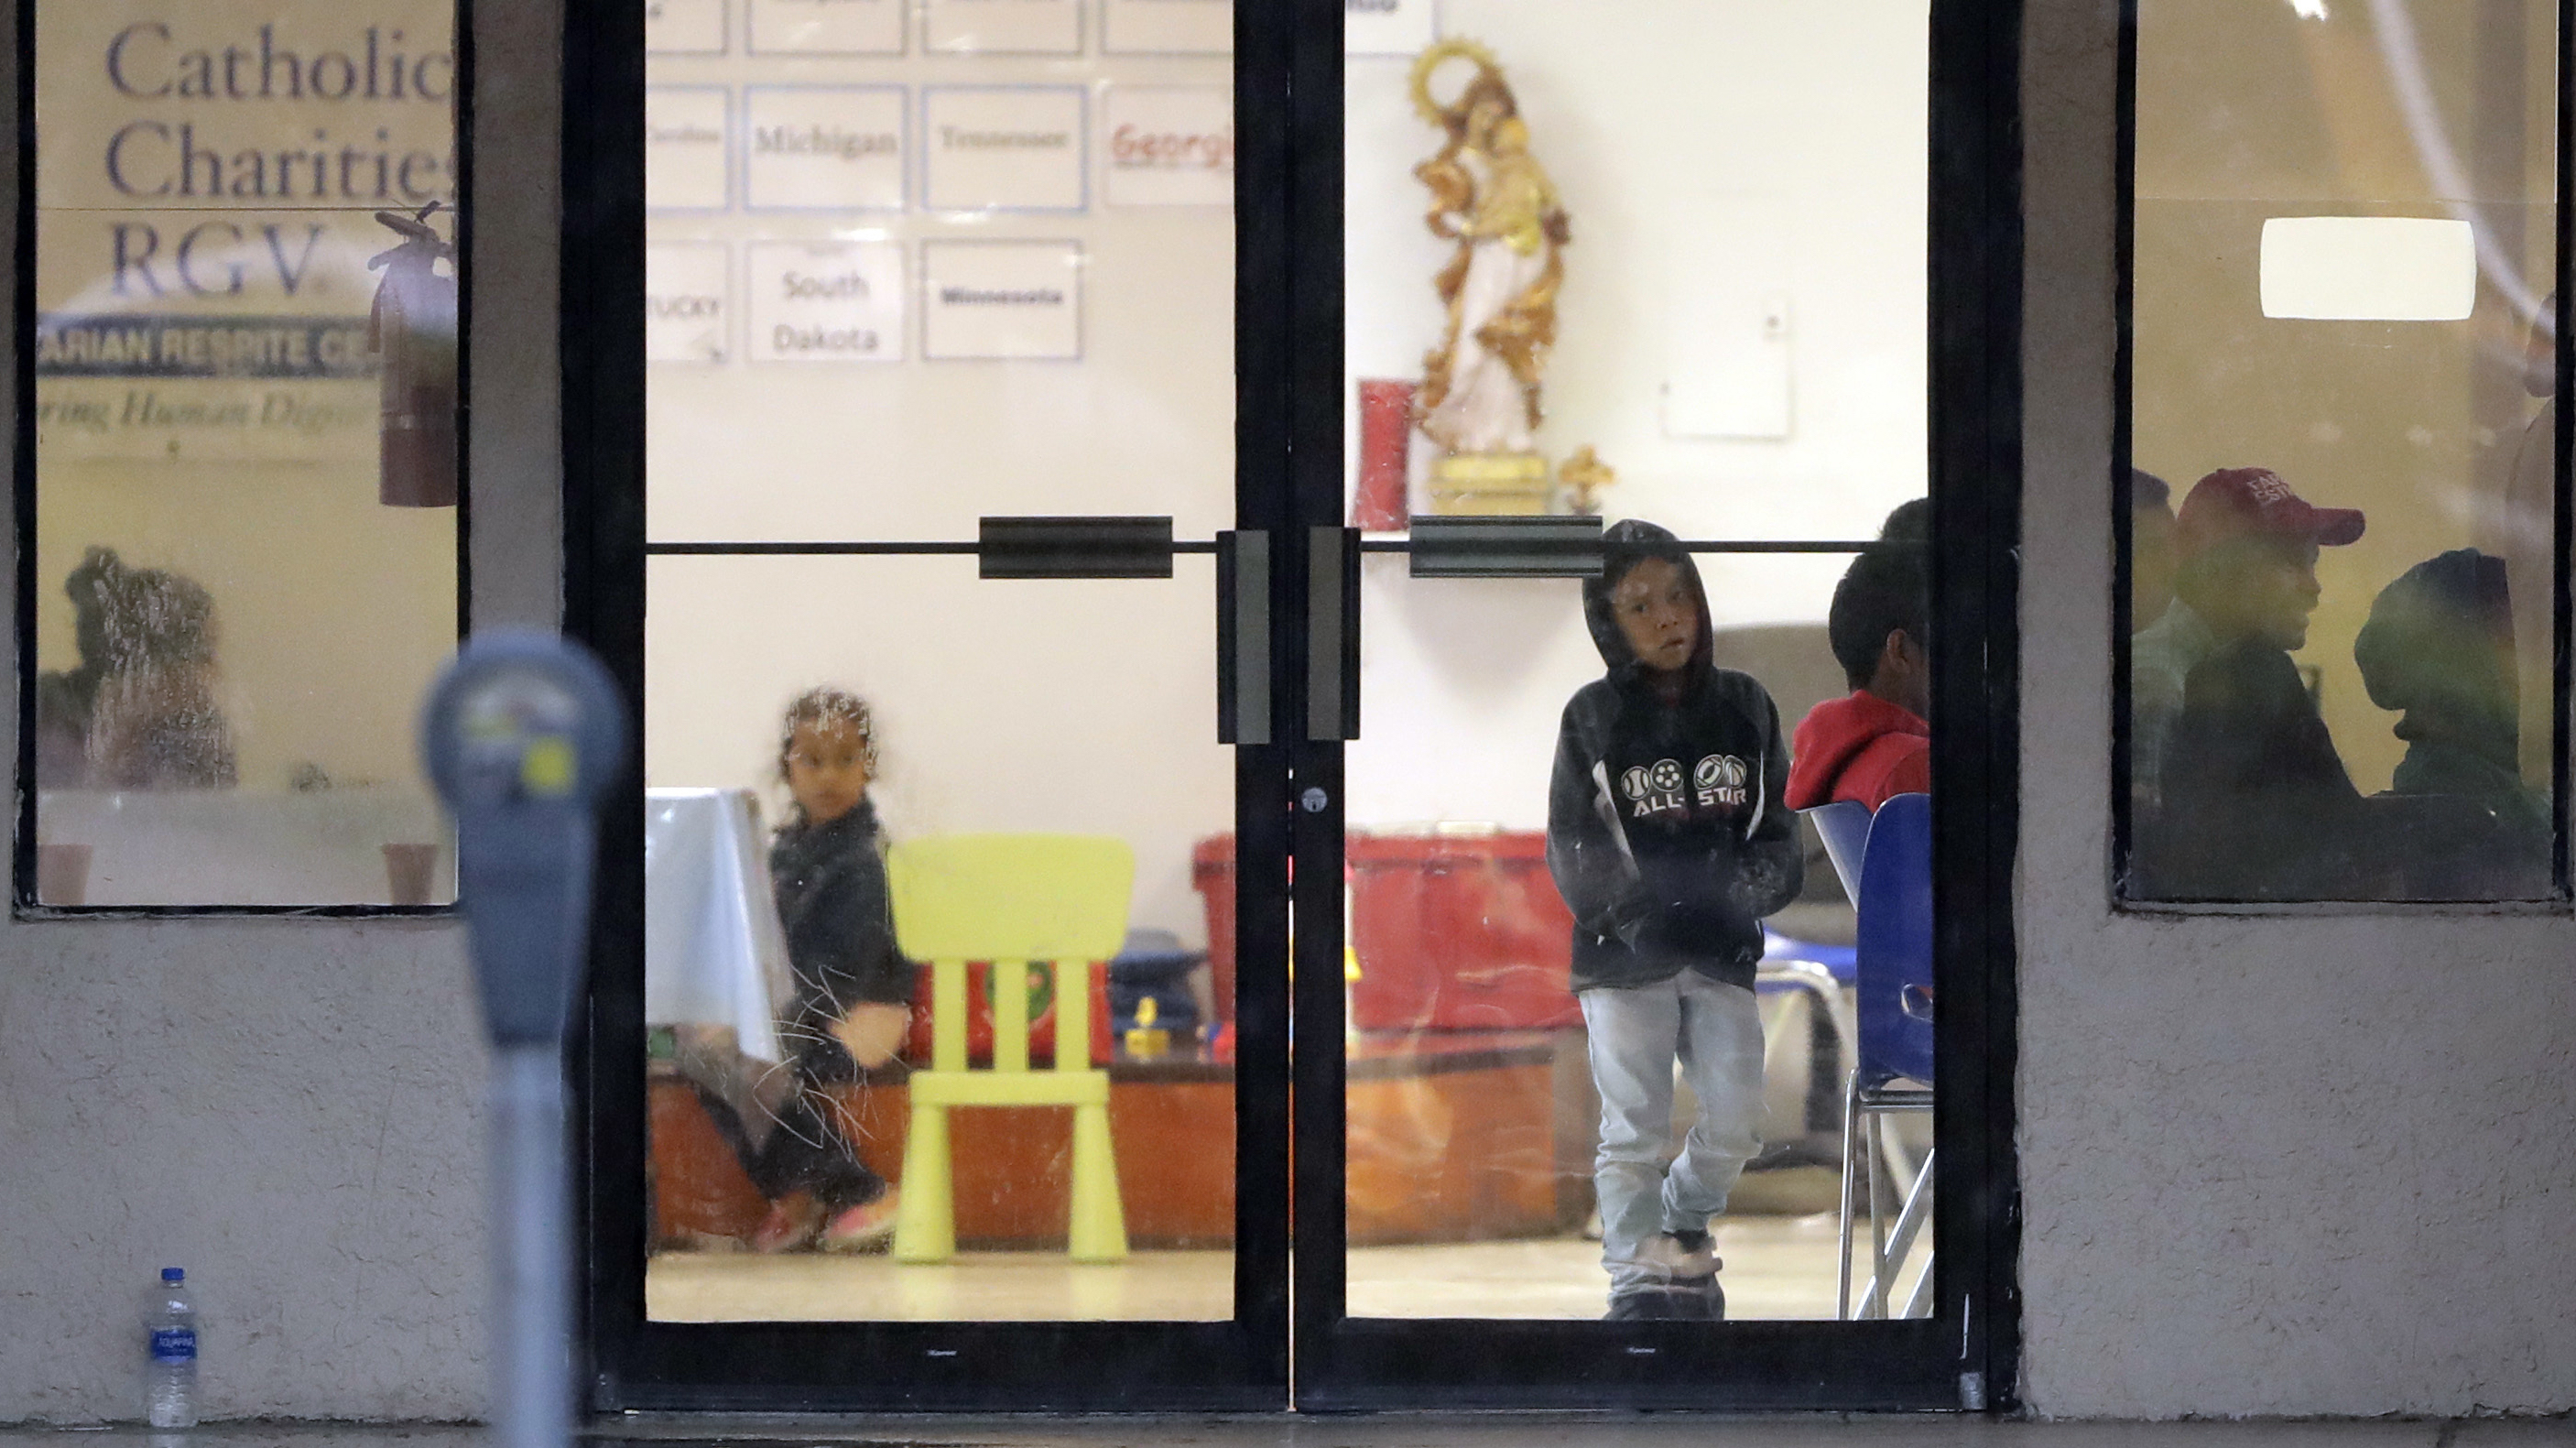 Photo: Immigration Families At The Border Child At Catholic Charities